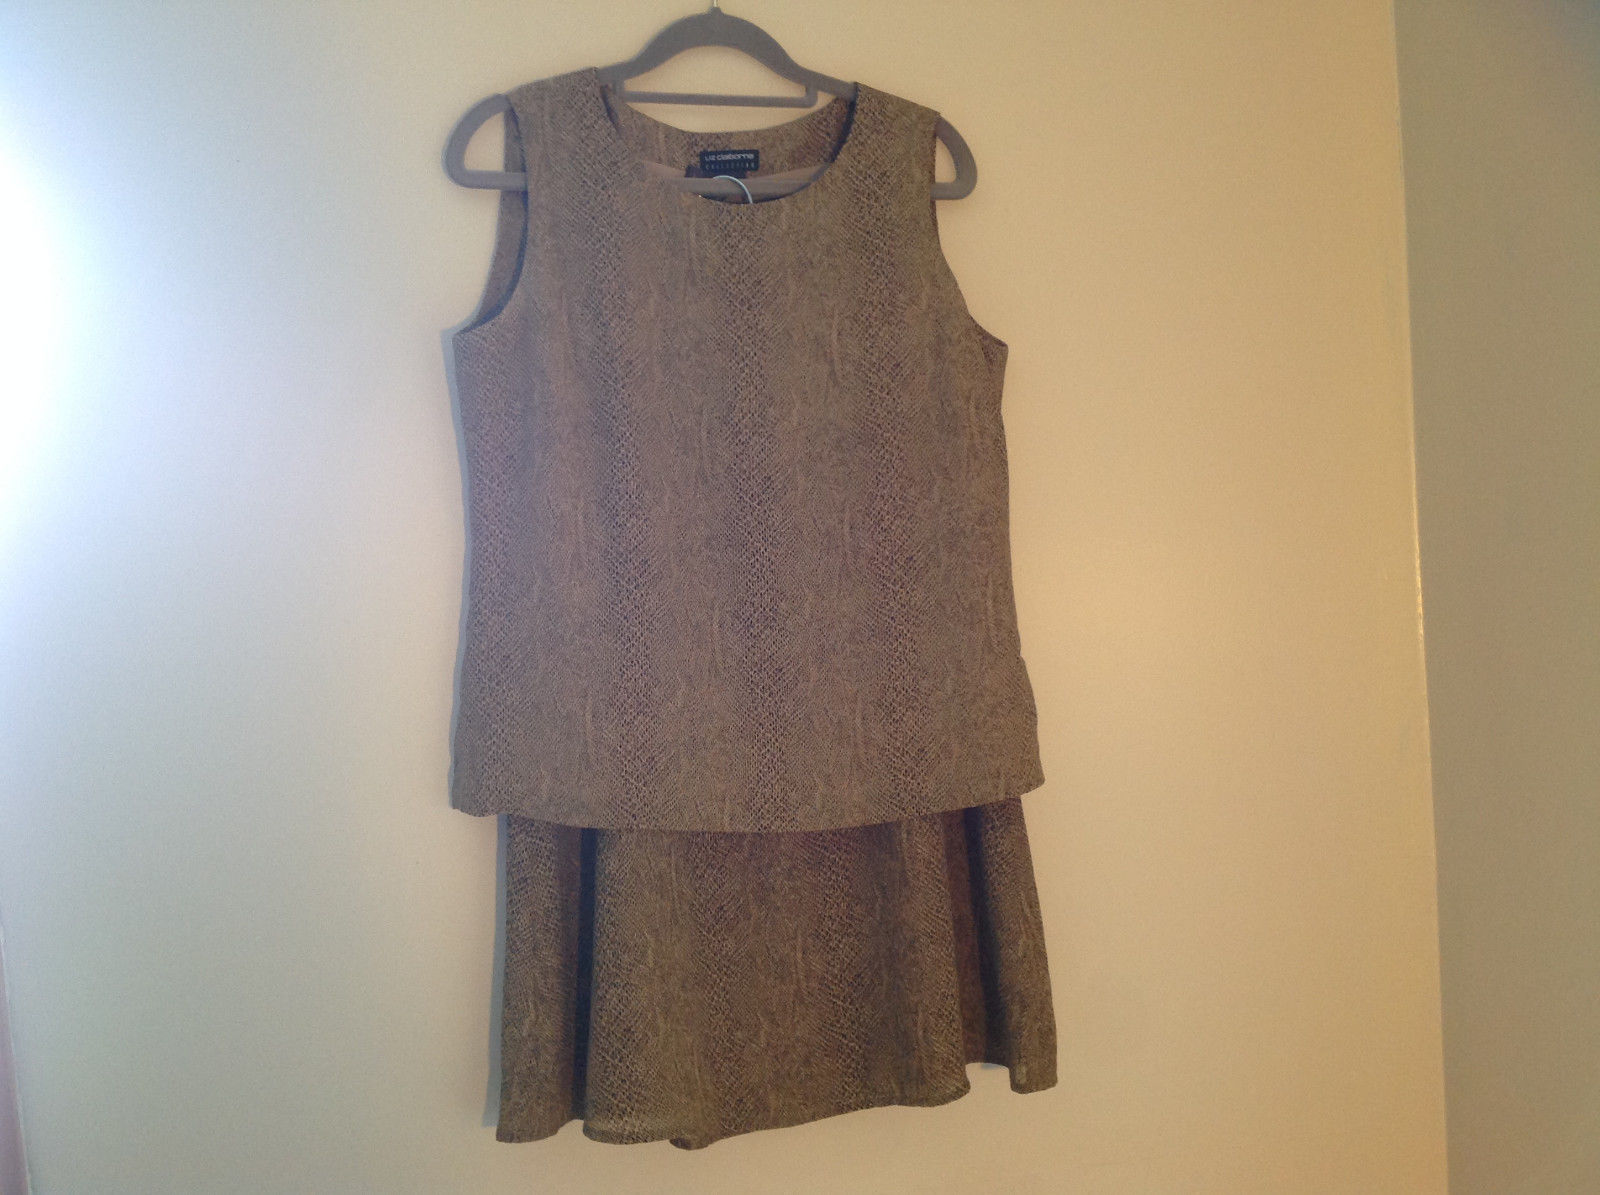 Tan Snakeskin Patterned Matching Sleeveless Shirt and Skirt Liz Claiborne Size 6